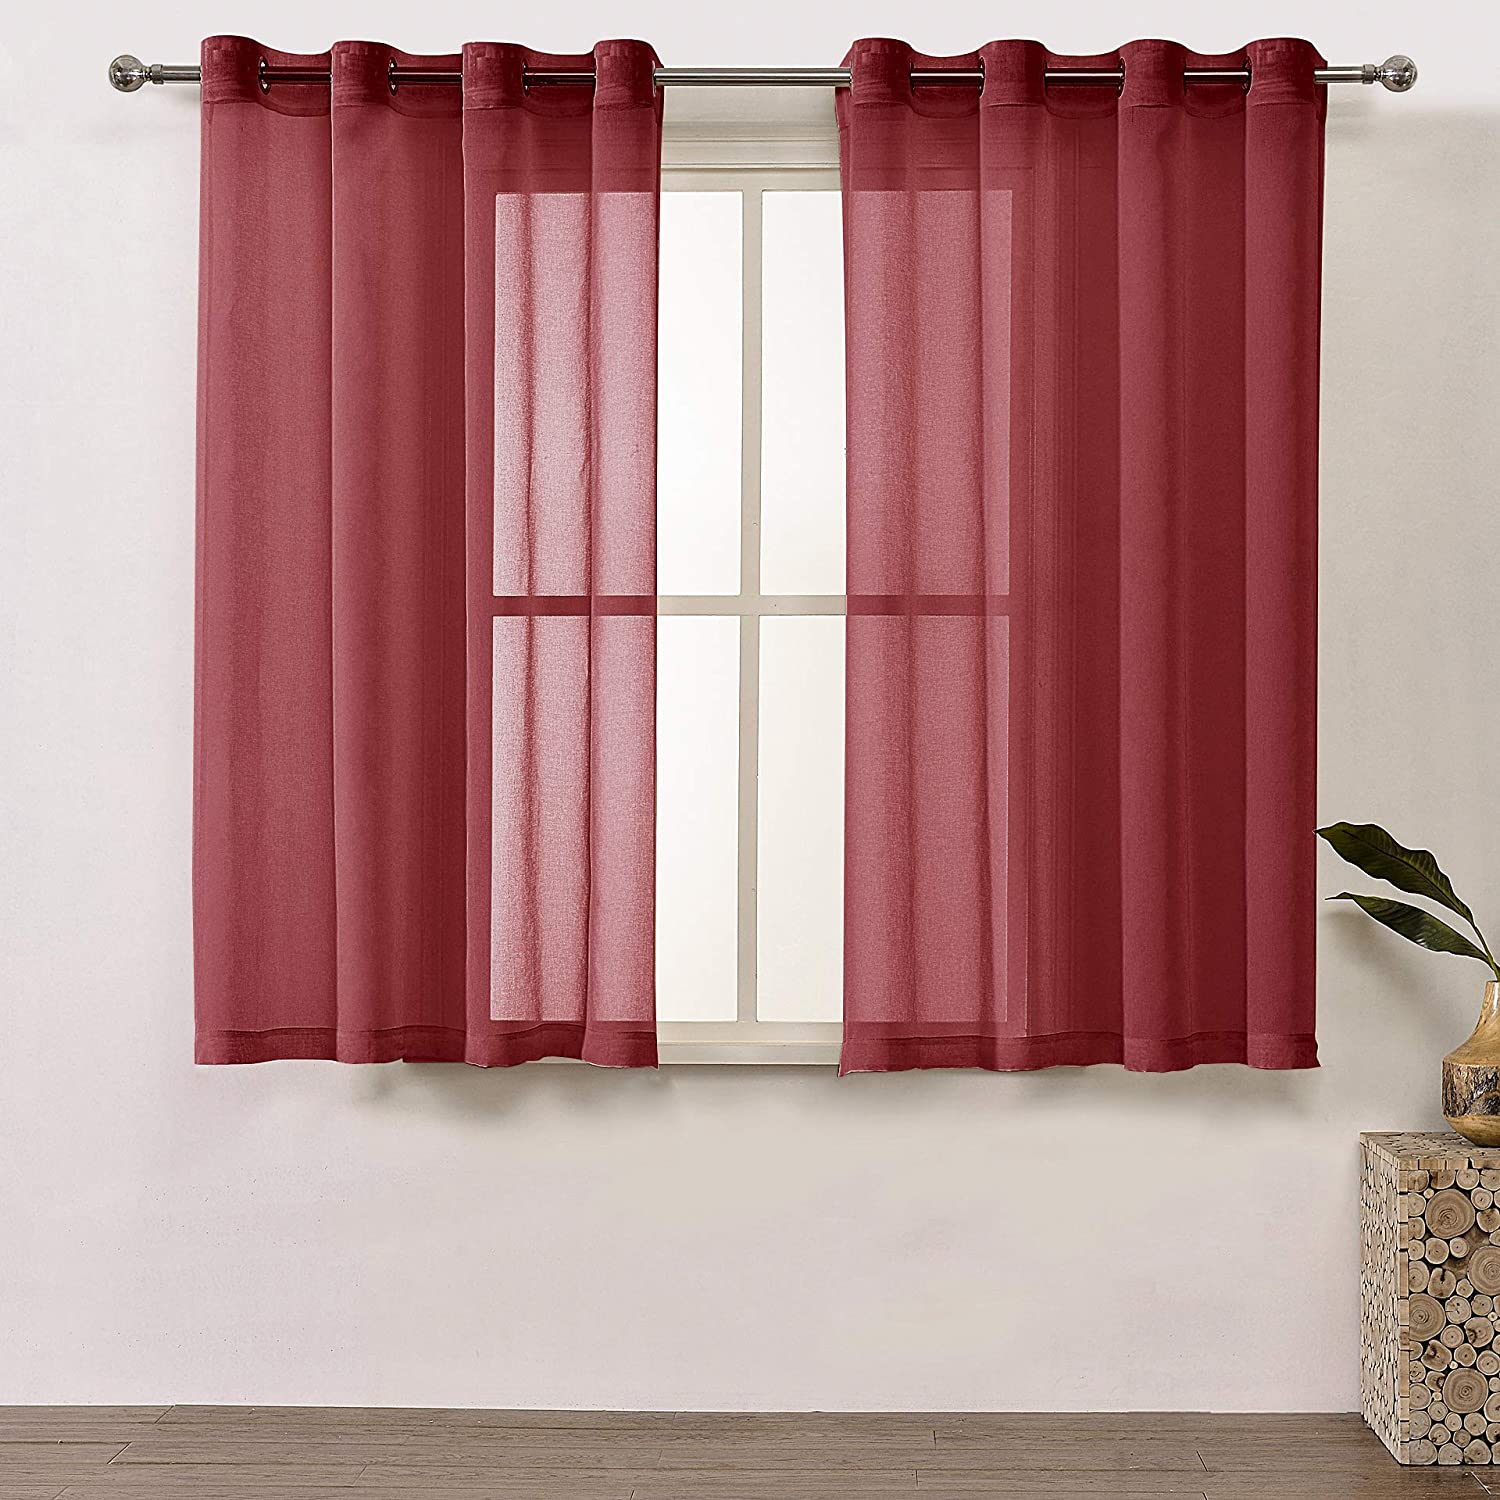 Amazon com dwcn sheer curtains amaranth red window curtain faux linen look voile drapes for living room kitchen set of 2 panels 52x63 inch long home